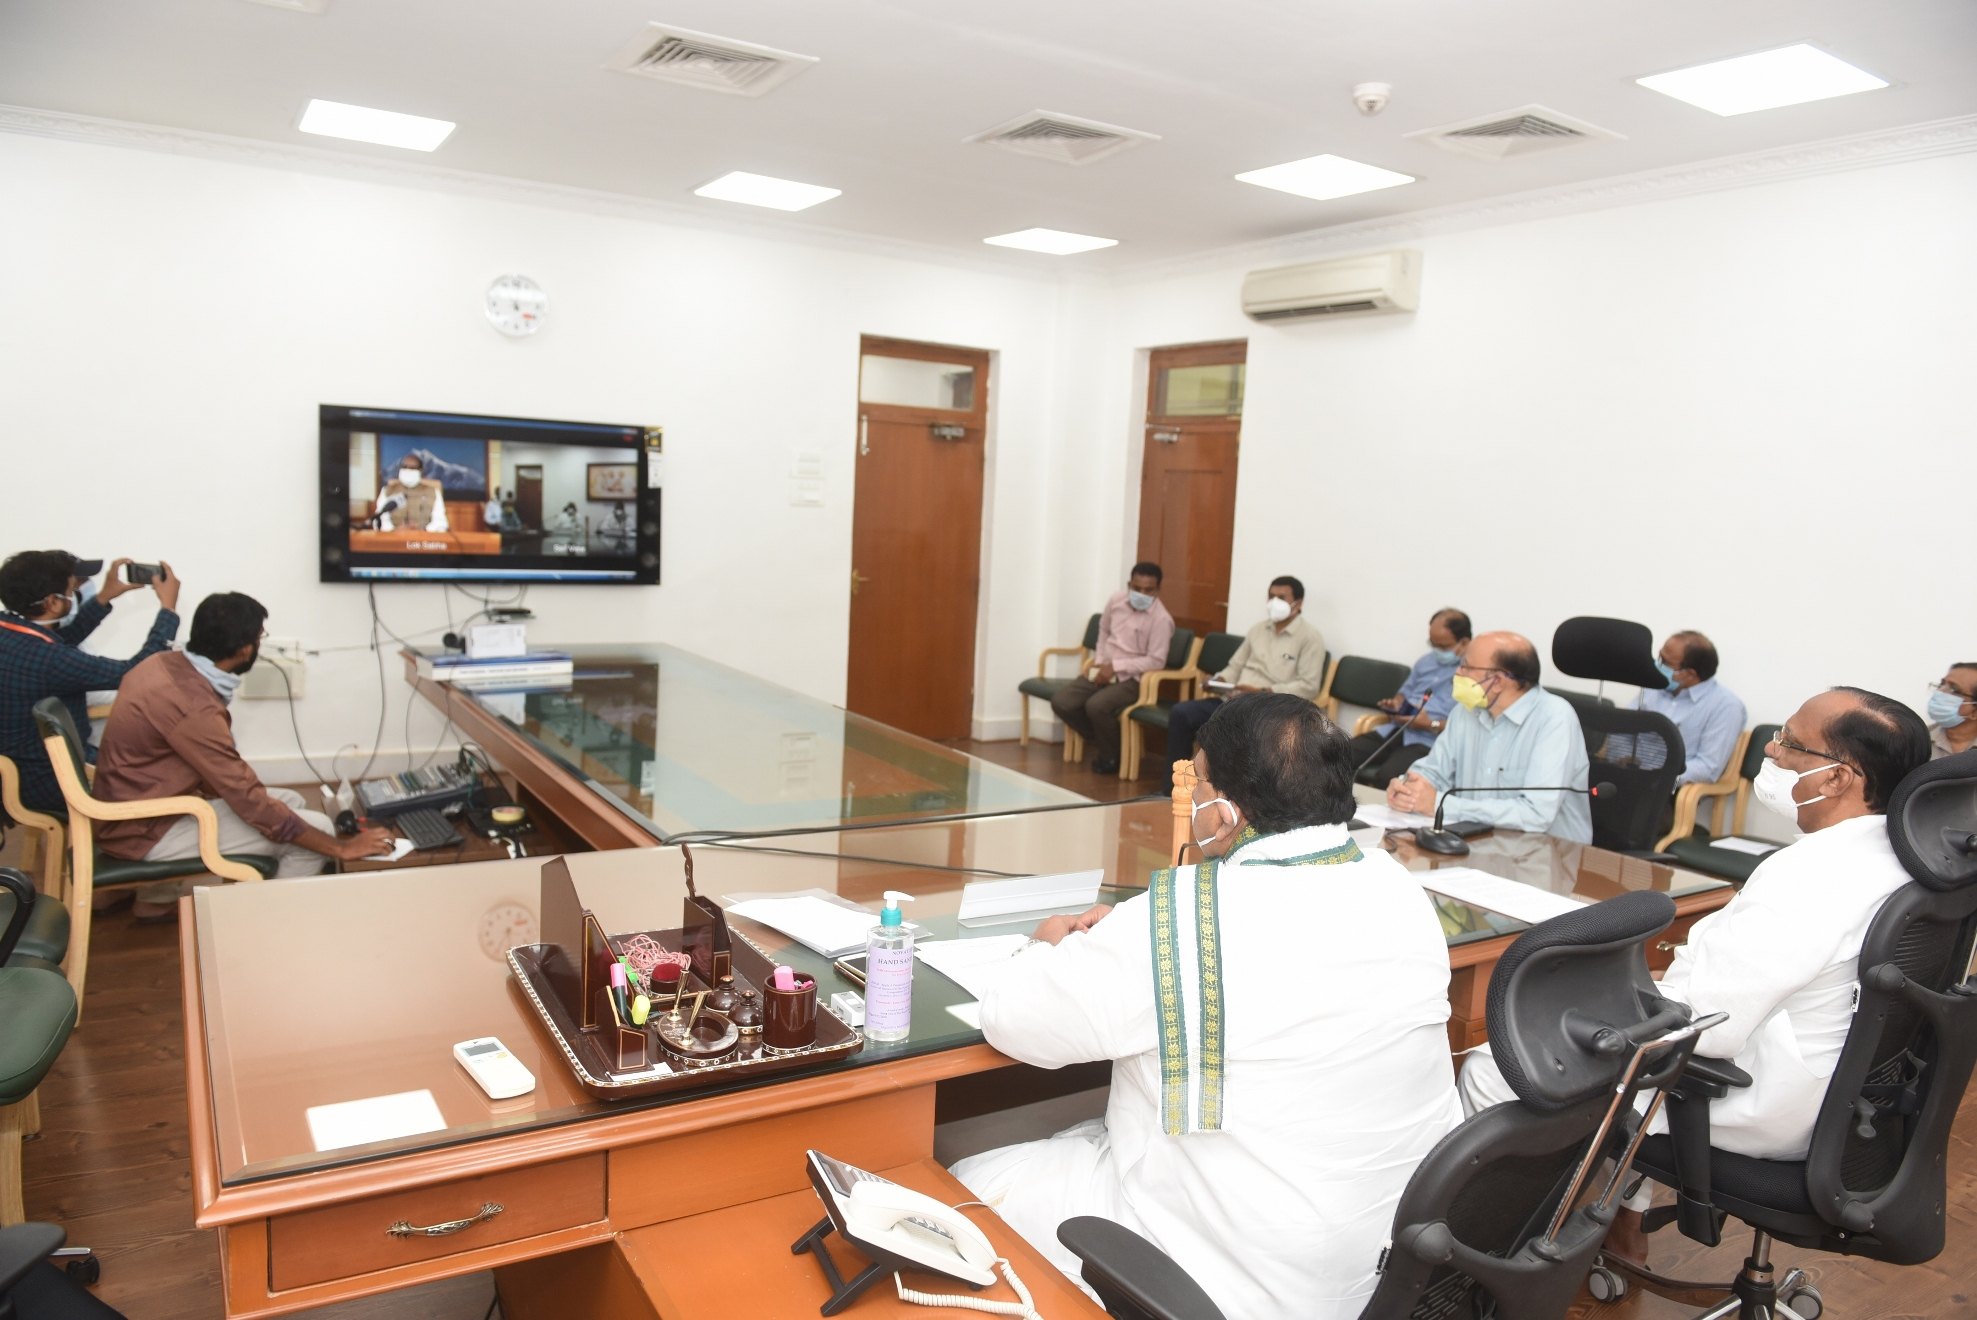 https://legislation.telanganalegislature.org.in//PreviewPage.tsl?filePath=basePath&fileName=Gallery/Presiding Officers of Telangana Legislature Video Conference with Honourable Speaker, Lok Sabha on 21.04.2020./2.JPG